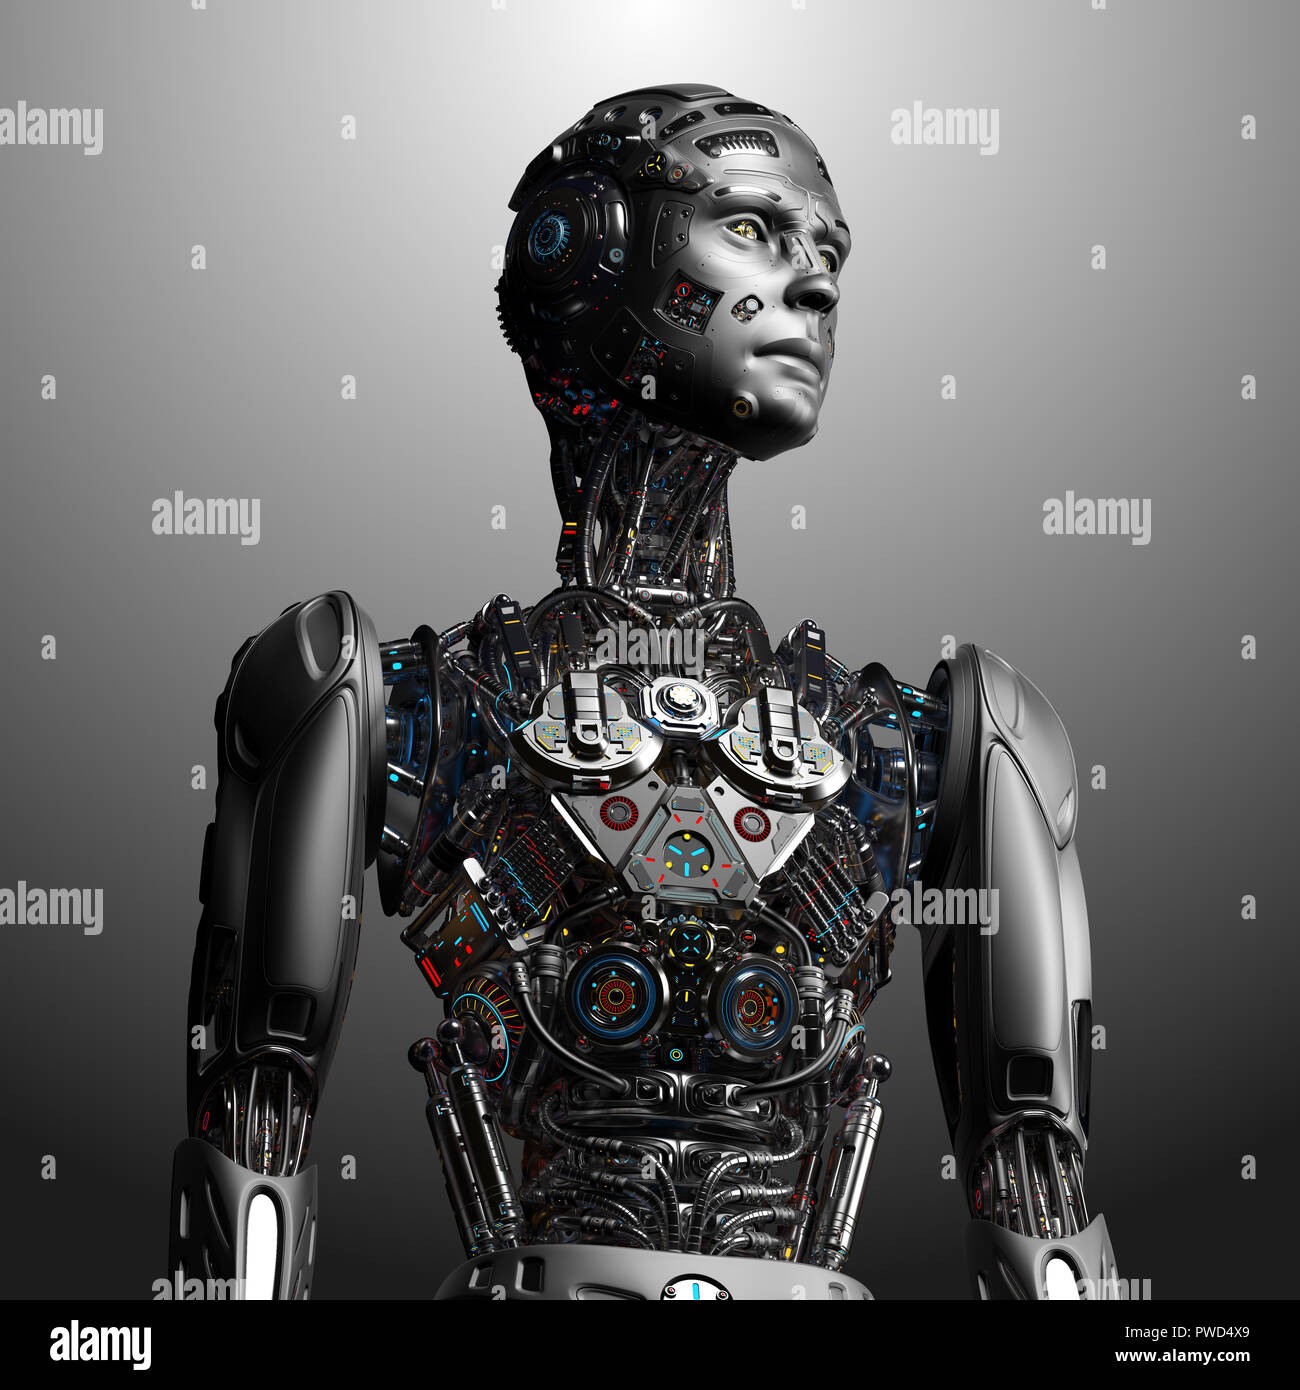 Robot Man. Very detailed futuristic cyborg. Upper body isolated on gray background. 3d render. - Stock Image